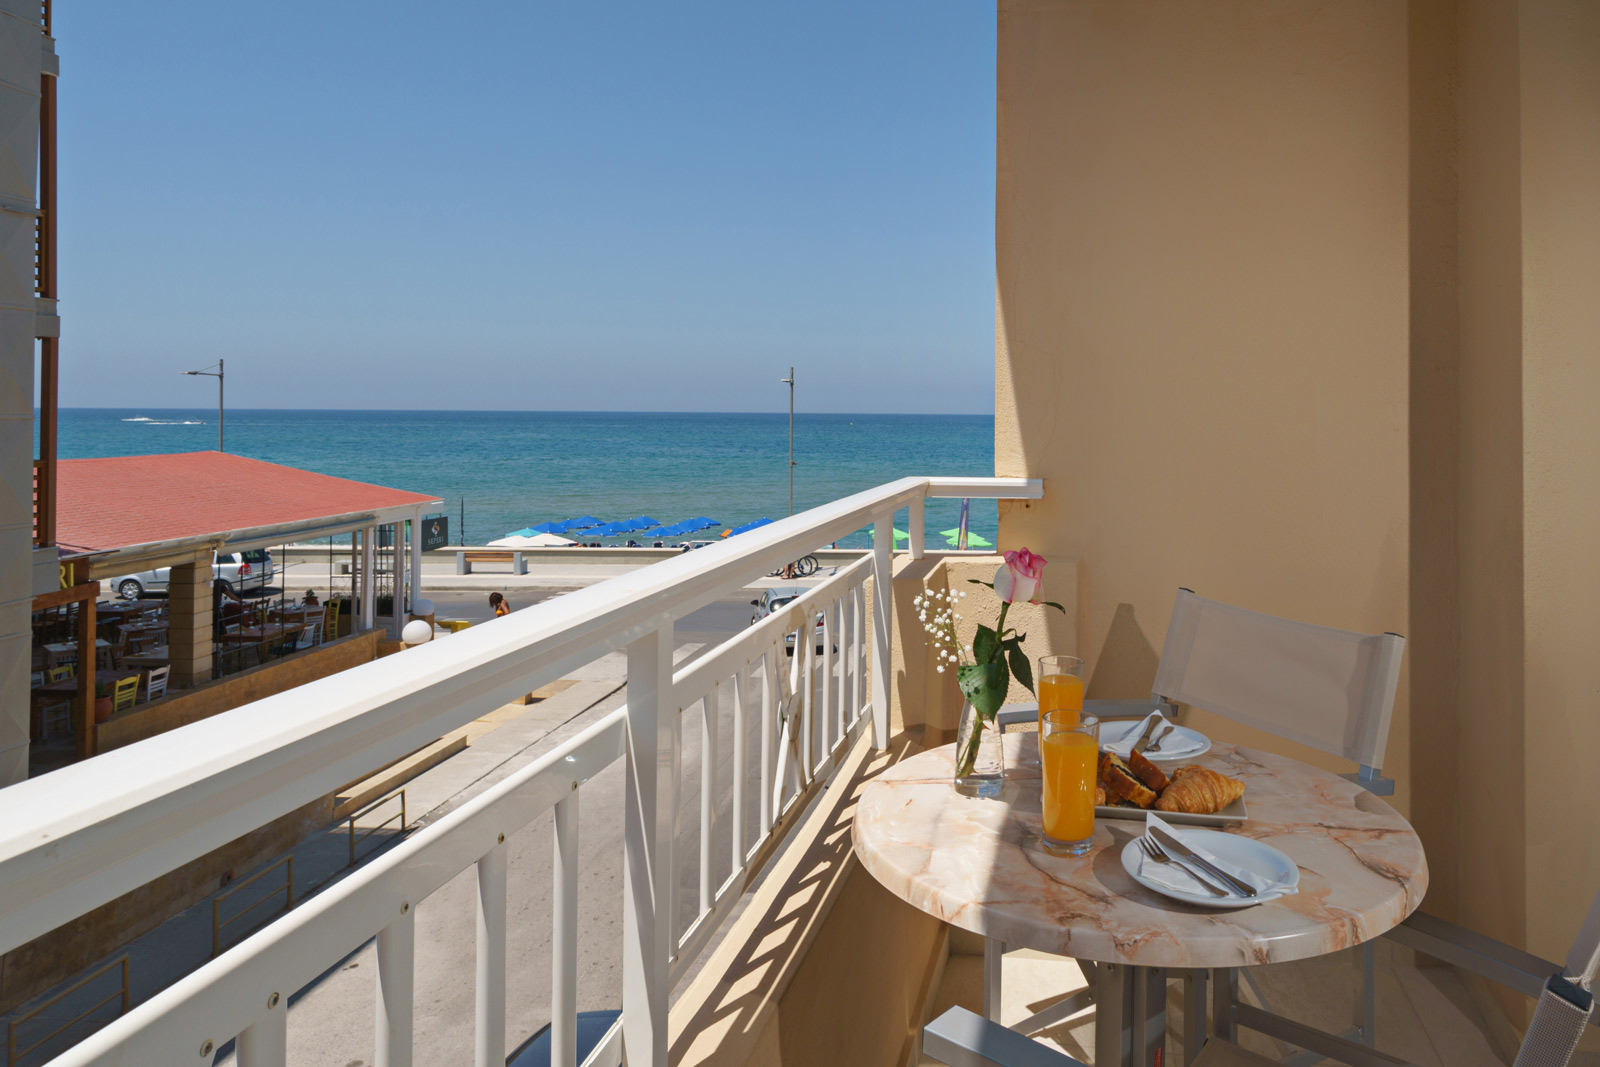 Balcony of the hotel, table with sea view